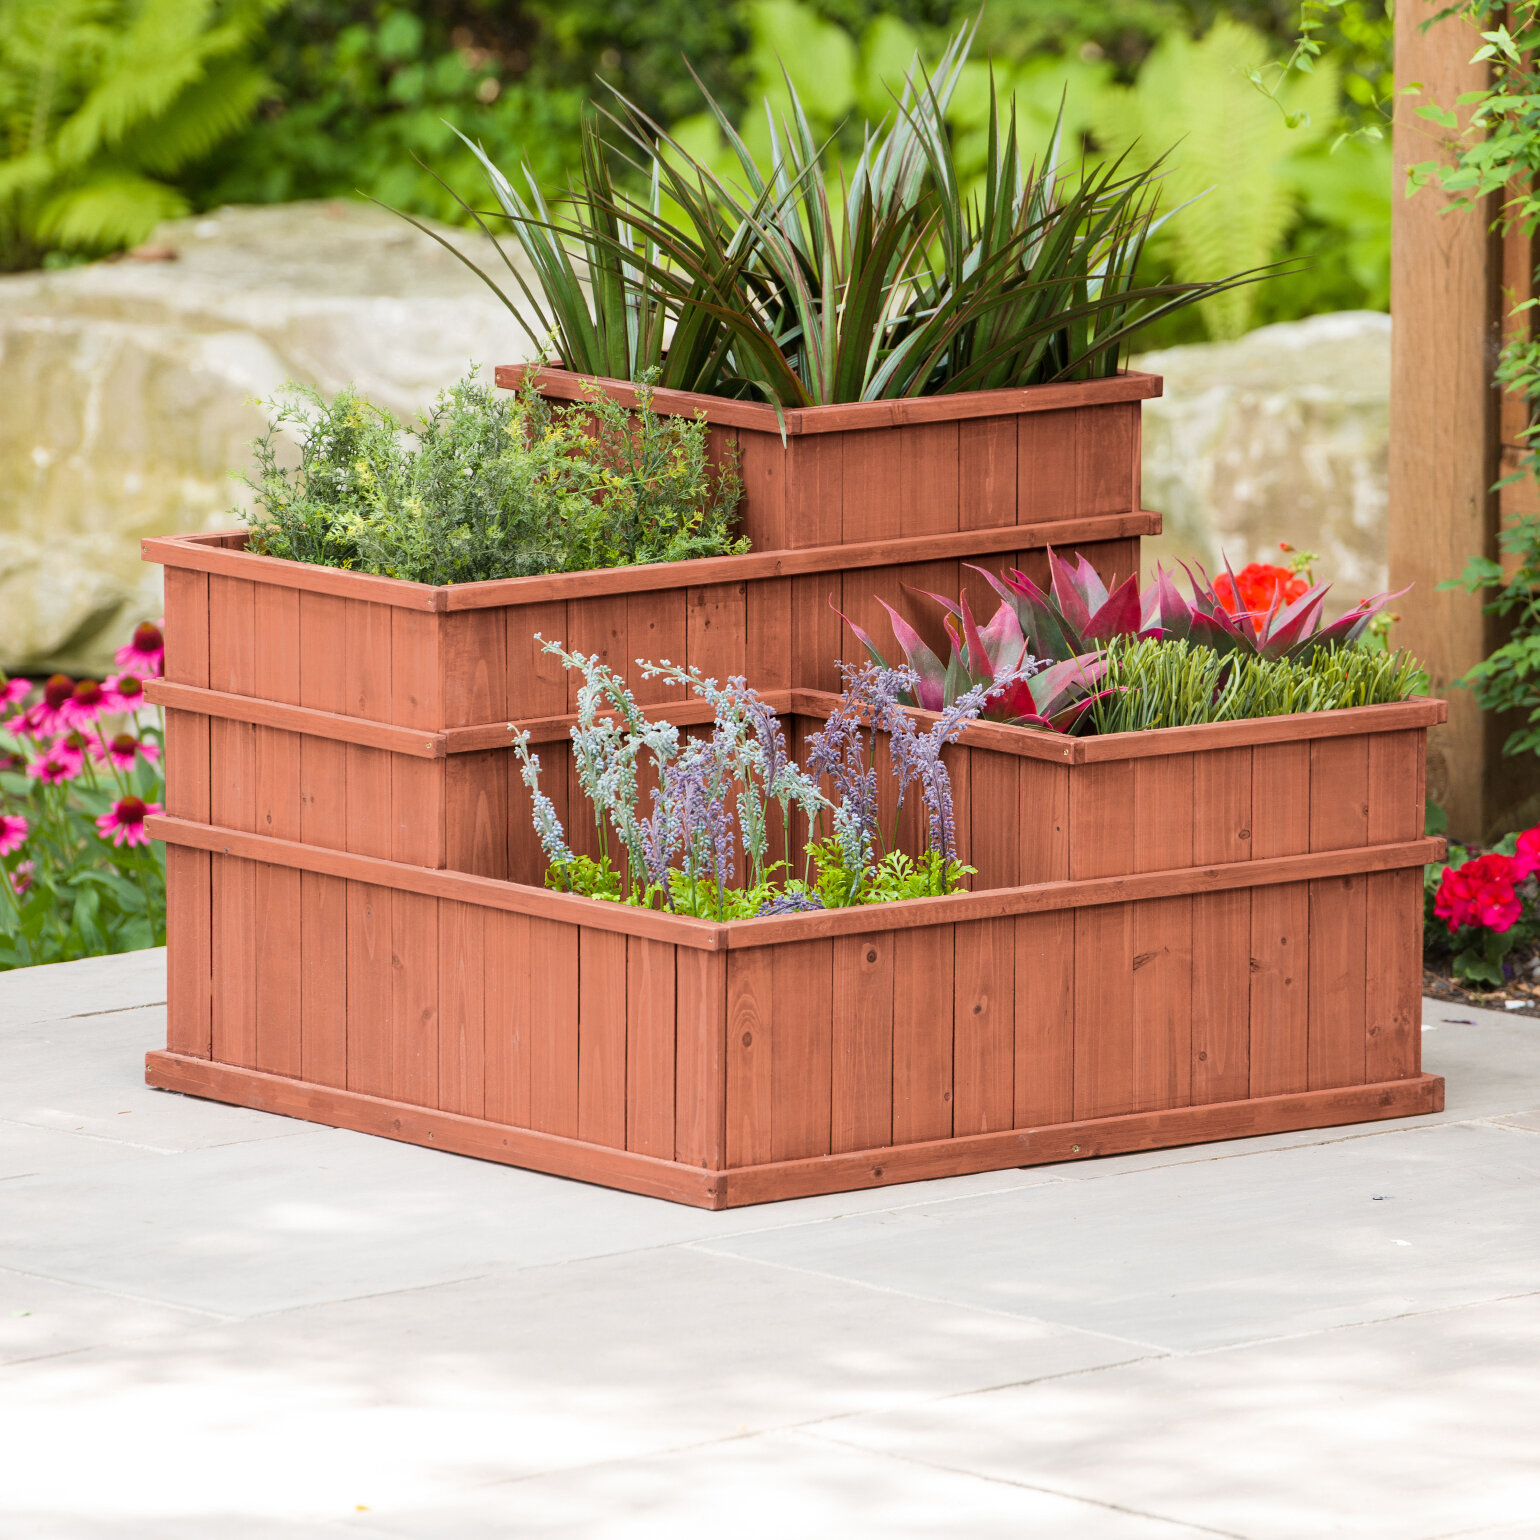 Vertical Elevated Outdoor Planter Box For Vegetable Herb Flower Succulent 4 Tier Raised Garden Bed With